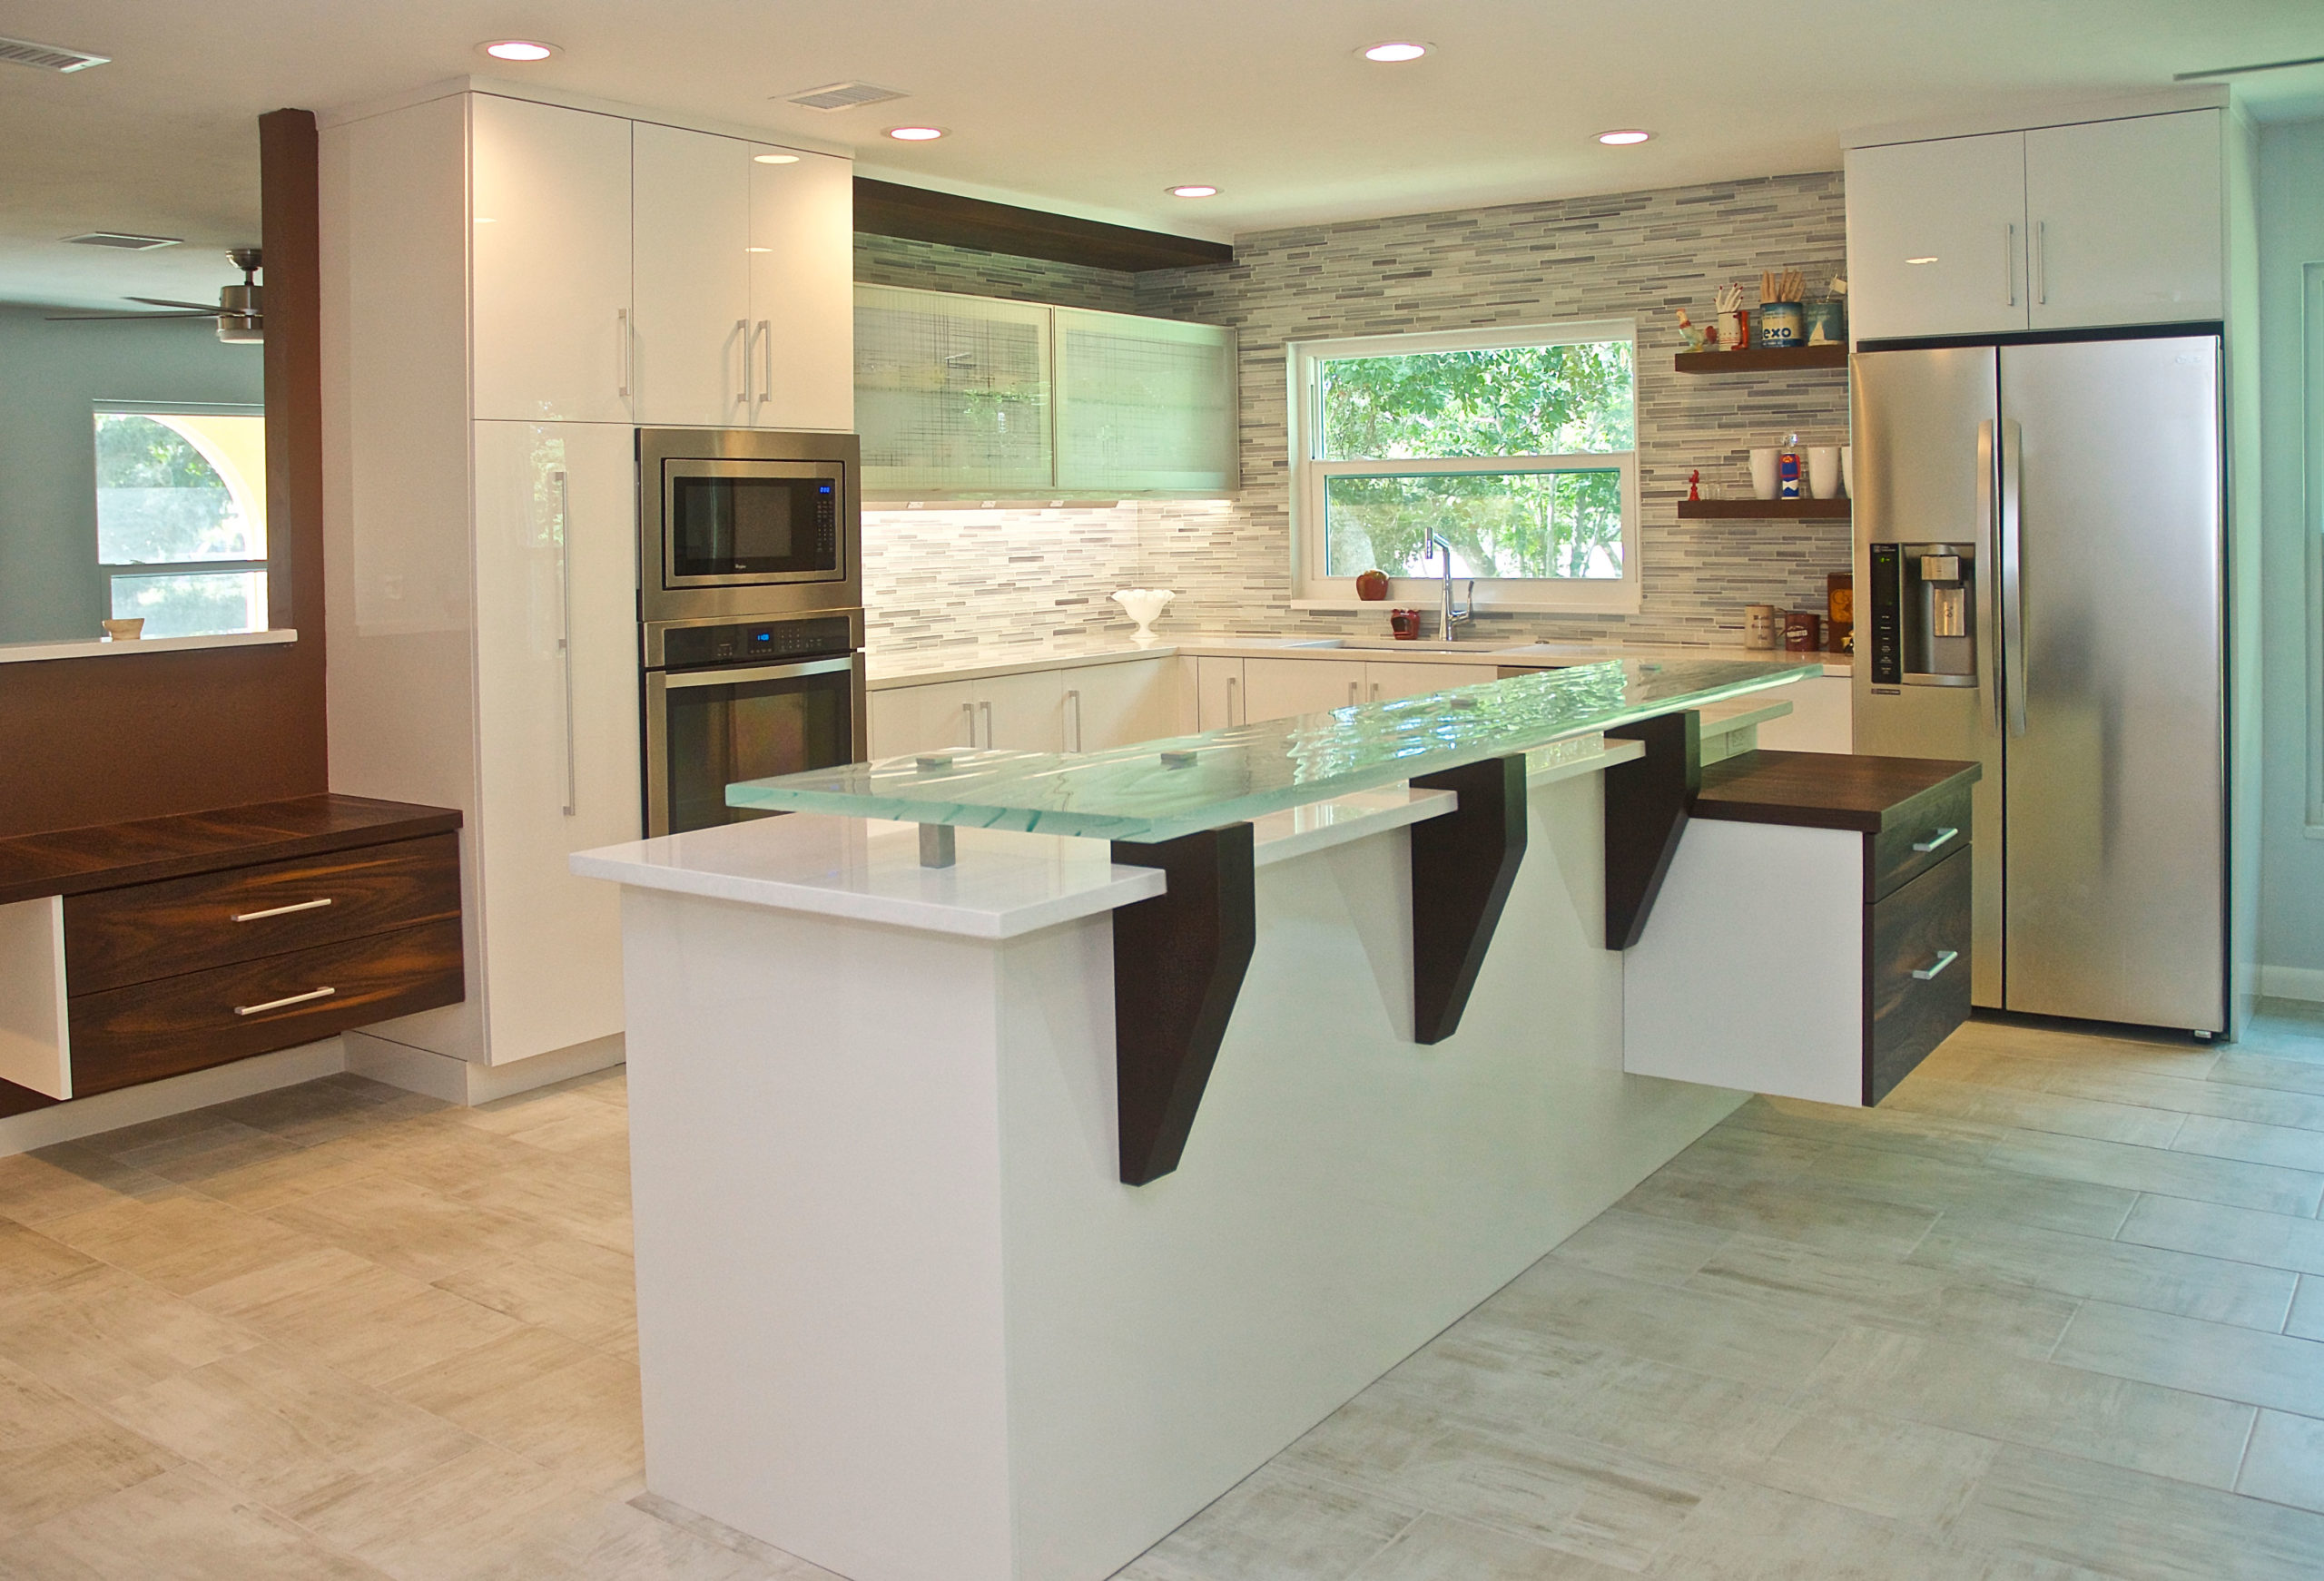 Da vinci cabinetry kitchens bonita springs, FL